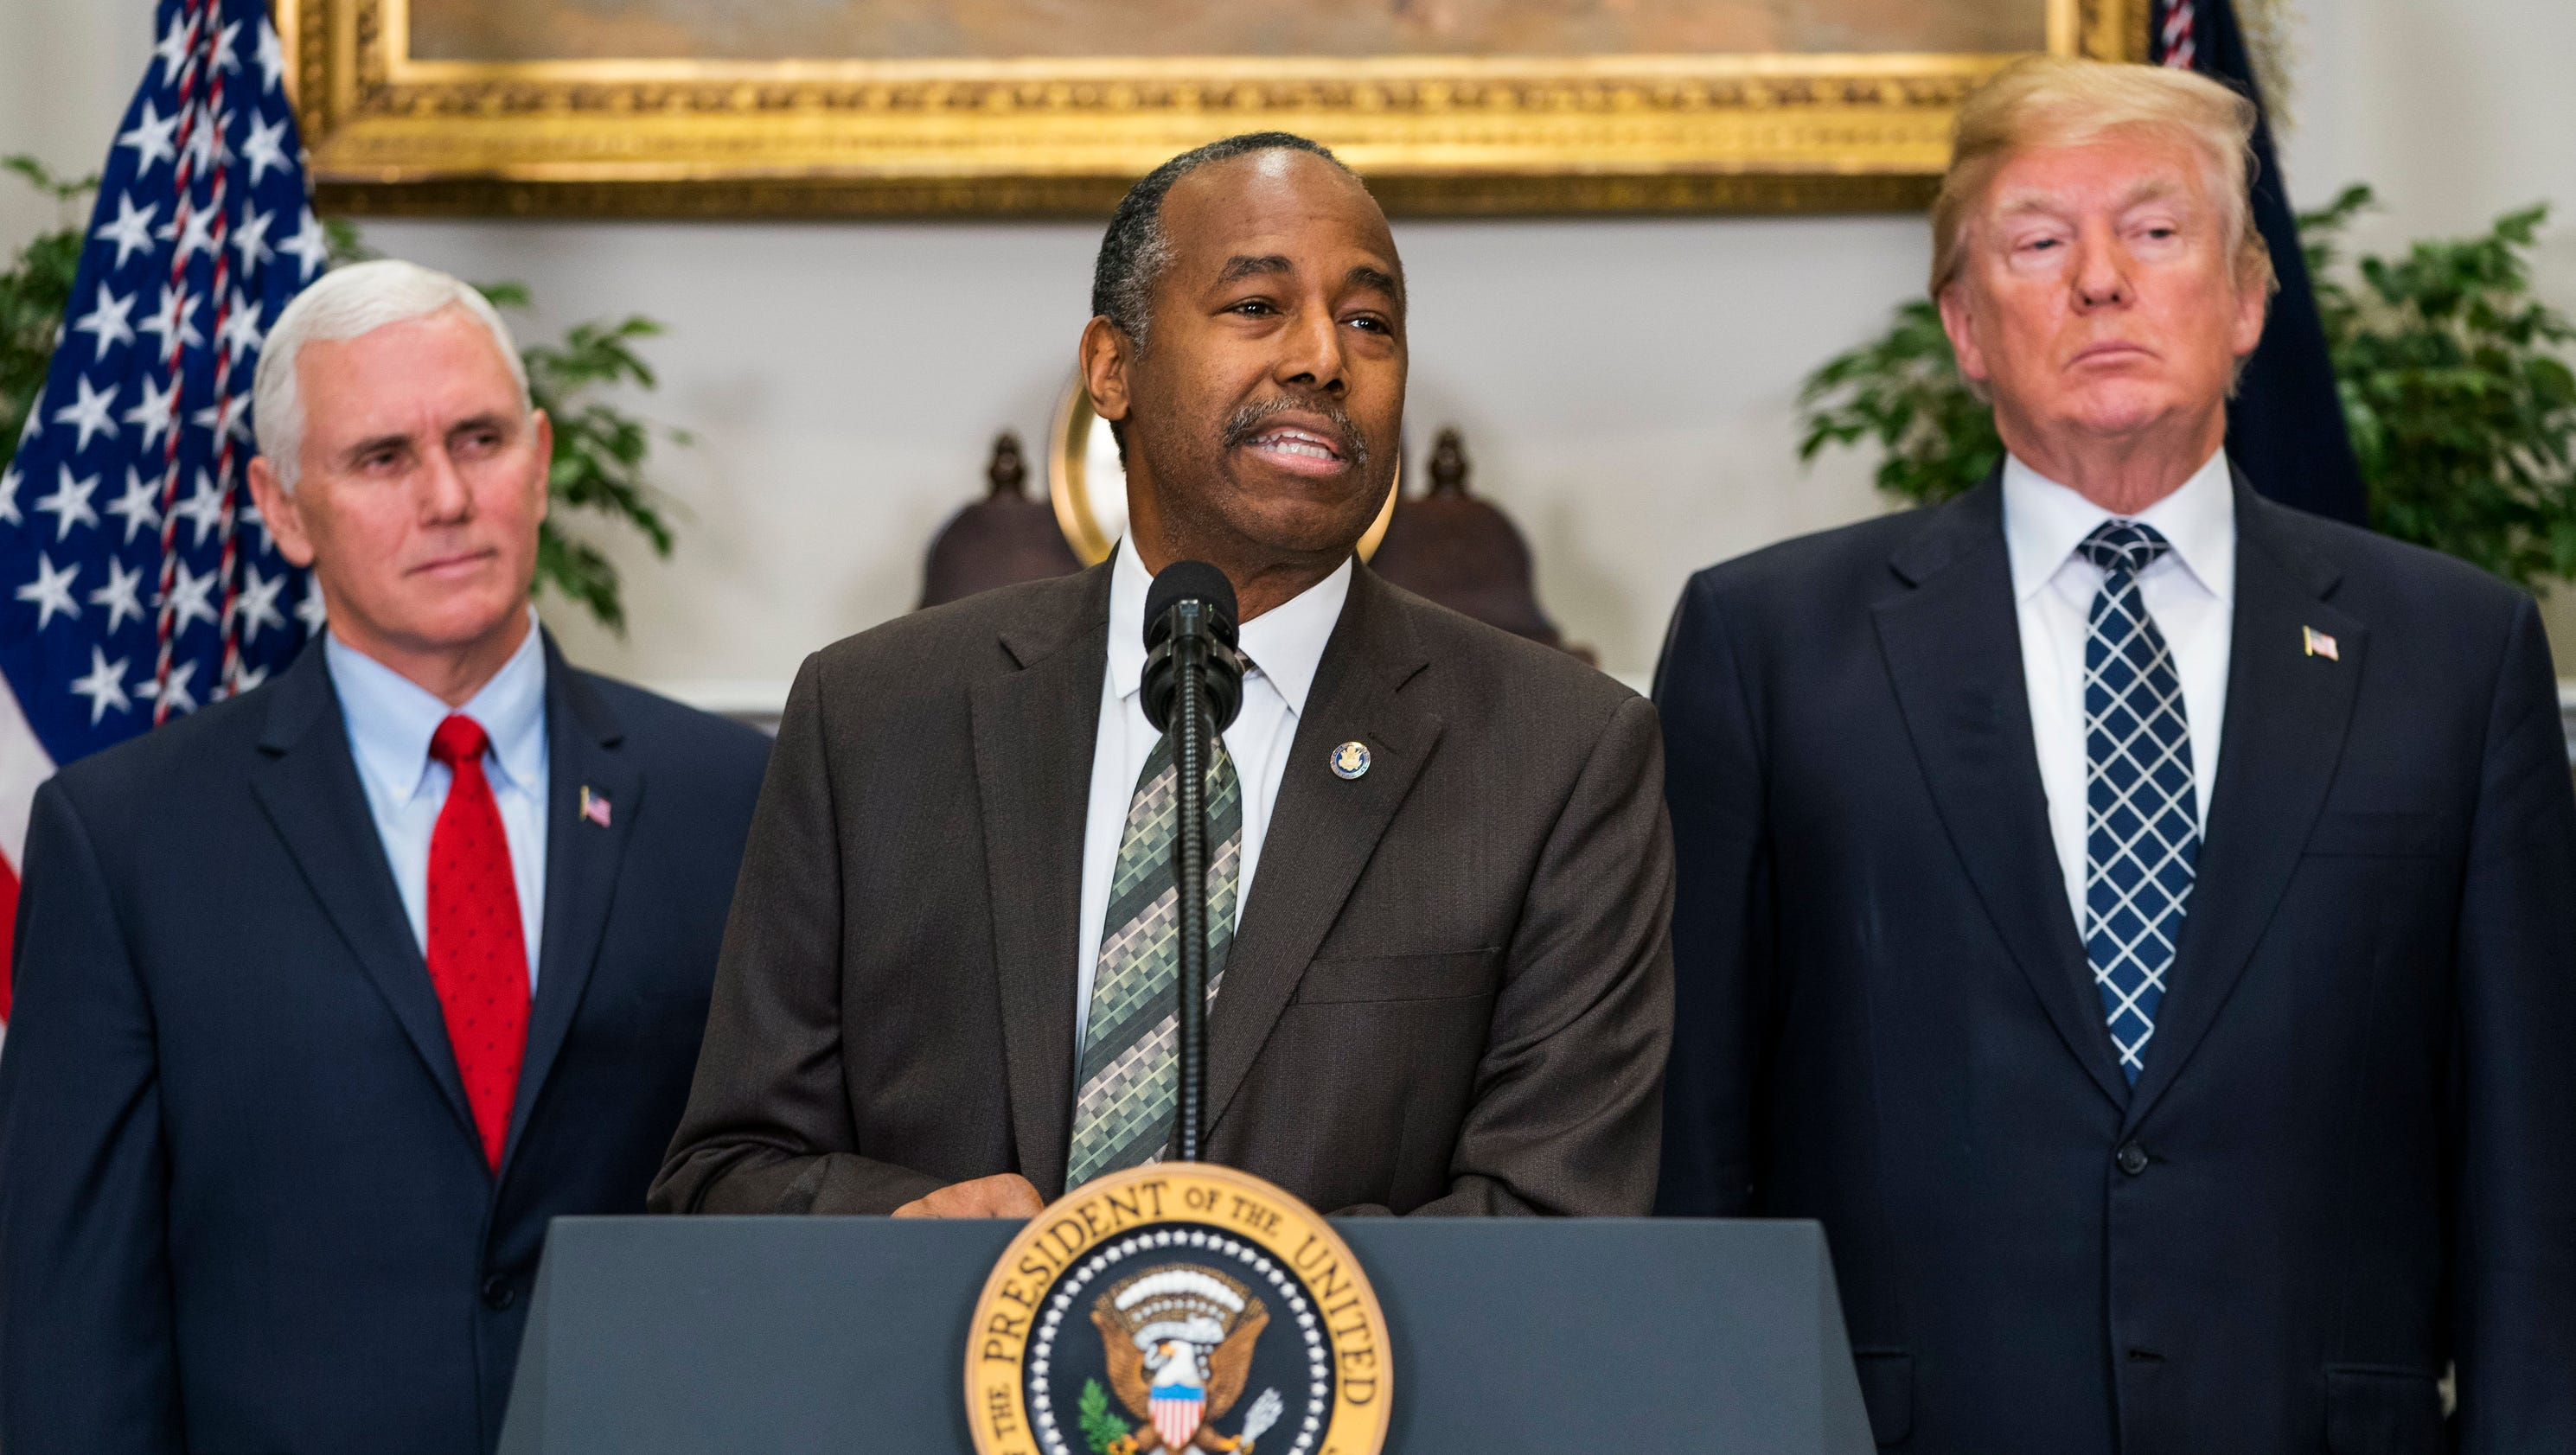 Did HUD really need to spend $31,000 of taxpayer money on that dining furniture for Ben Carson?